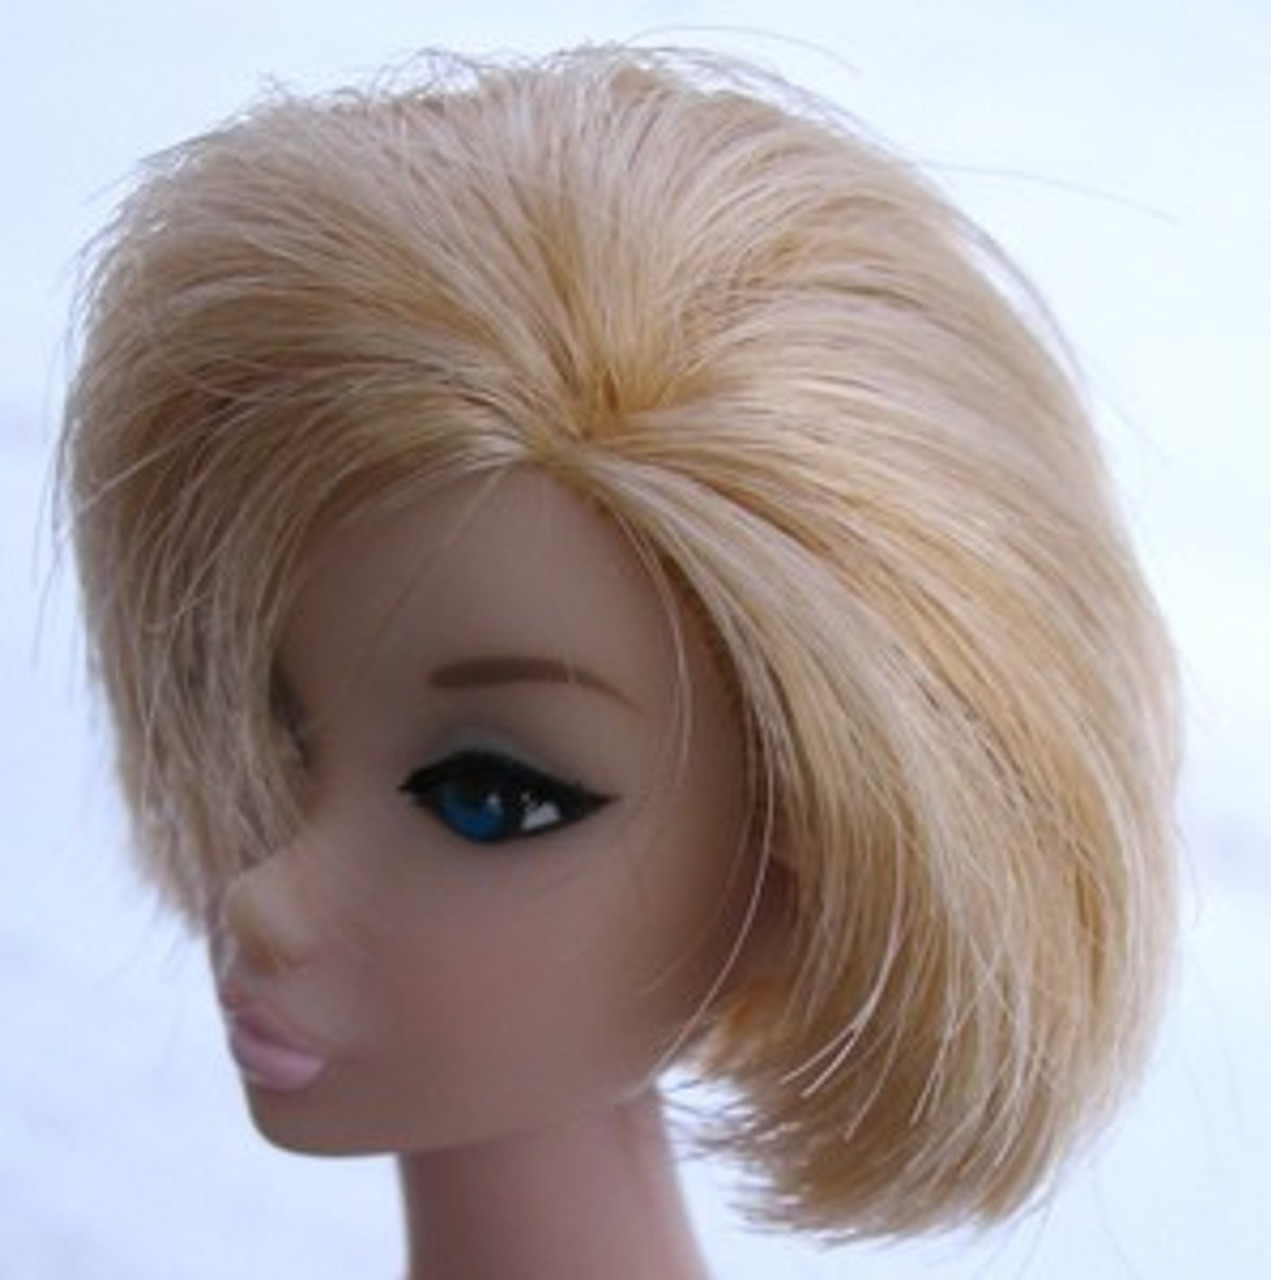 Monroe 84 KatSilk Saran Doll Hair